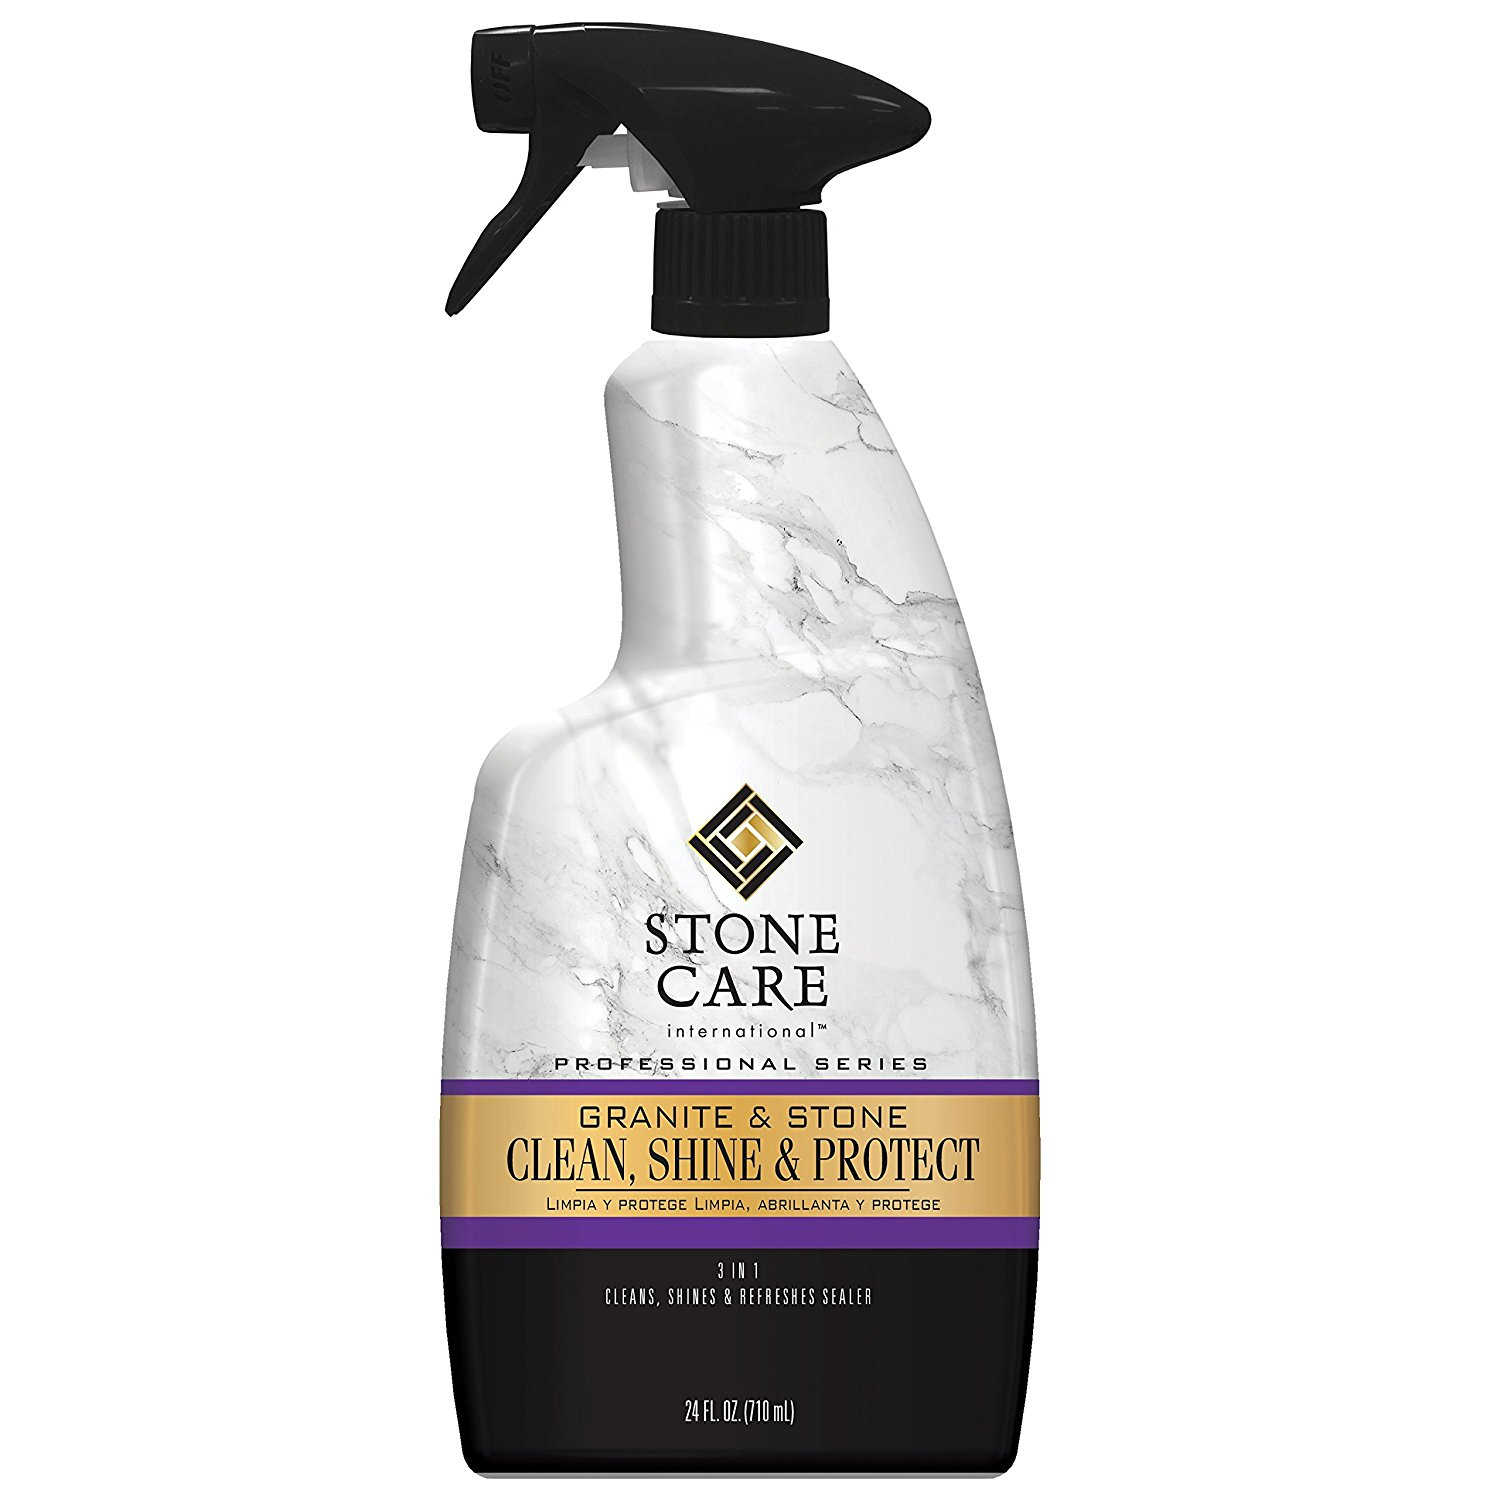 Stone Care International Granite & Stone Clean, Shine & Protect Spray - Cleans and Polishes Stone Surfaces - 24 fl oz